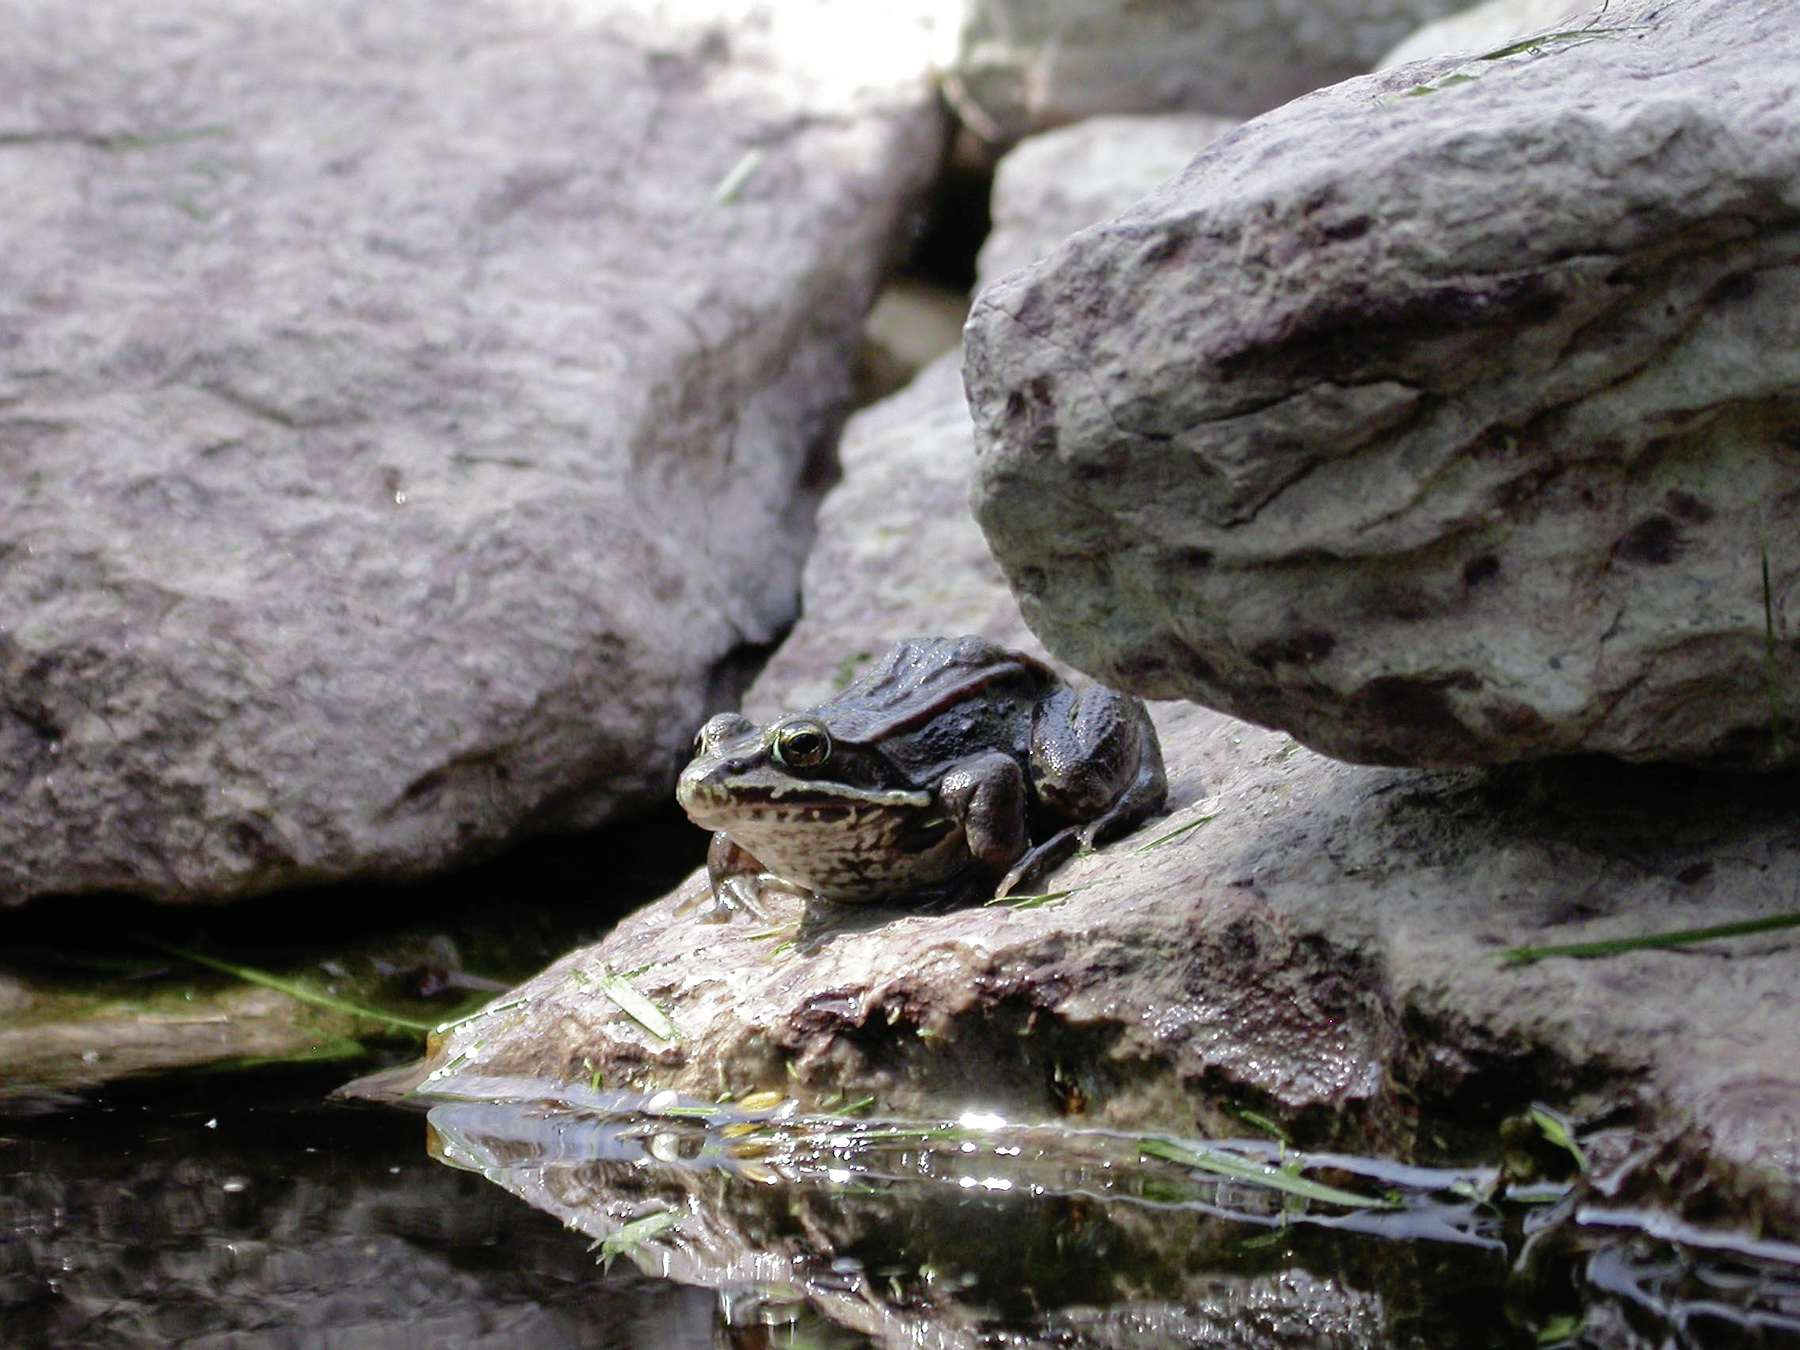 Listening to the frogs at dusk may reduce stress.